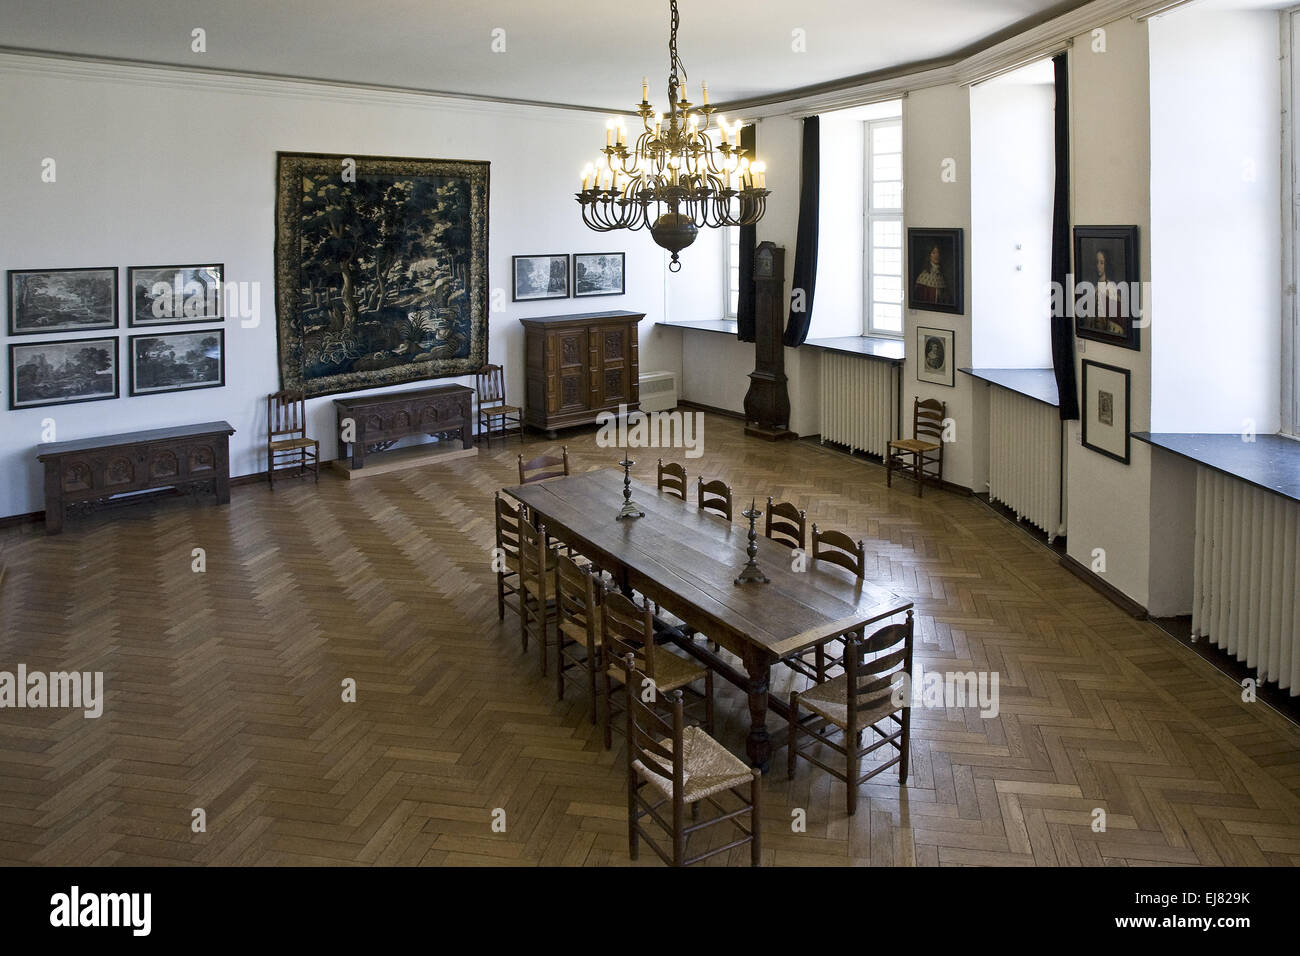 Museum Castle Moers, Germany - Stock Image